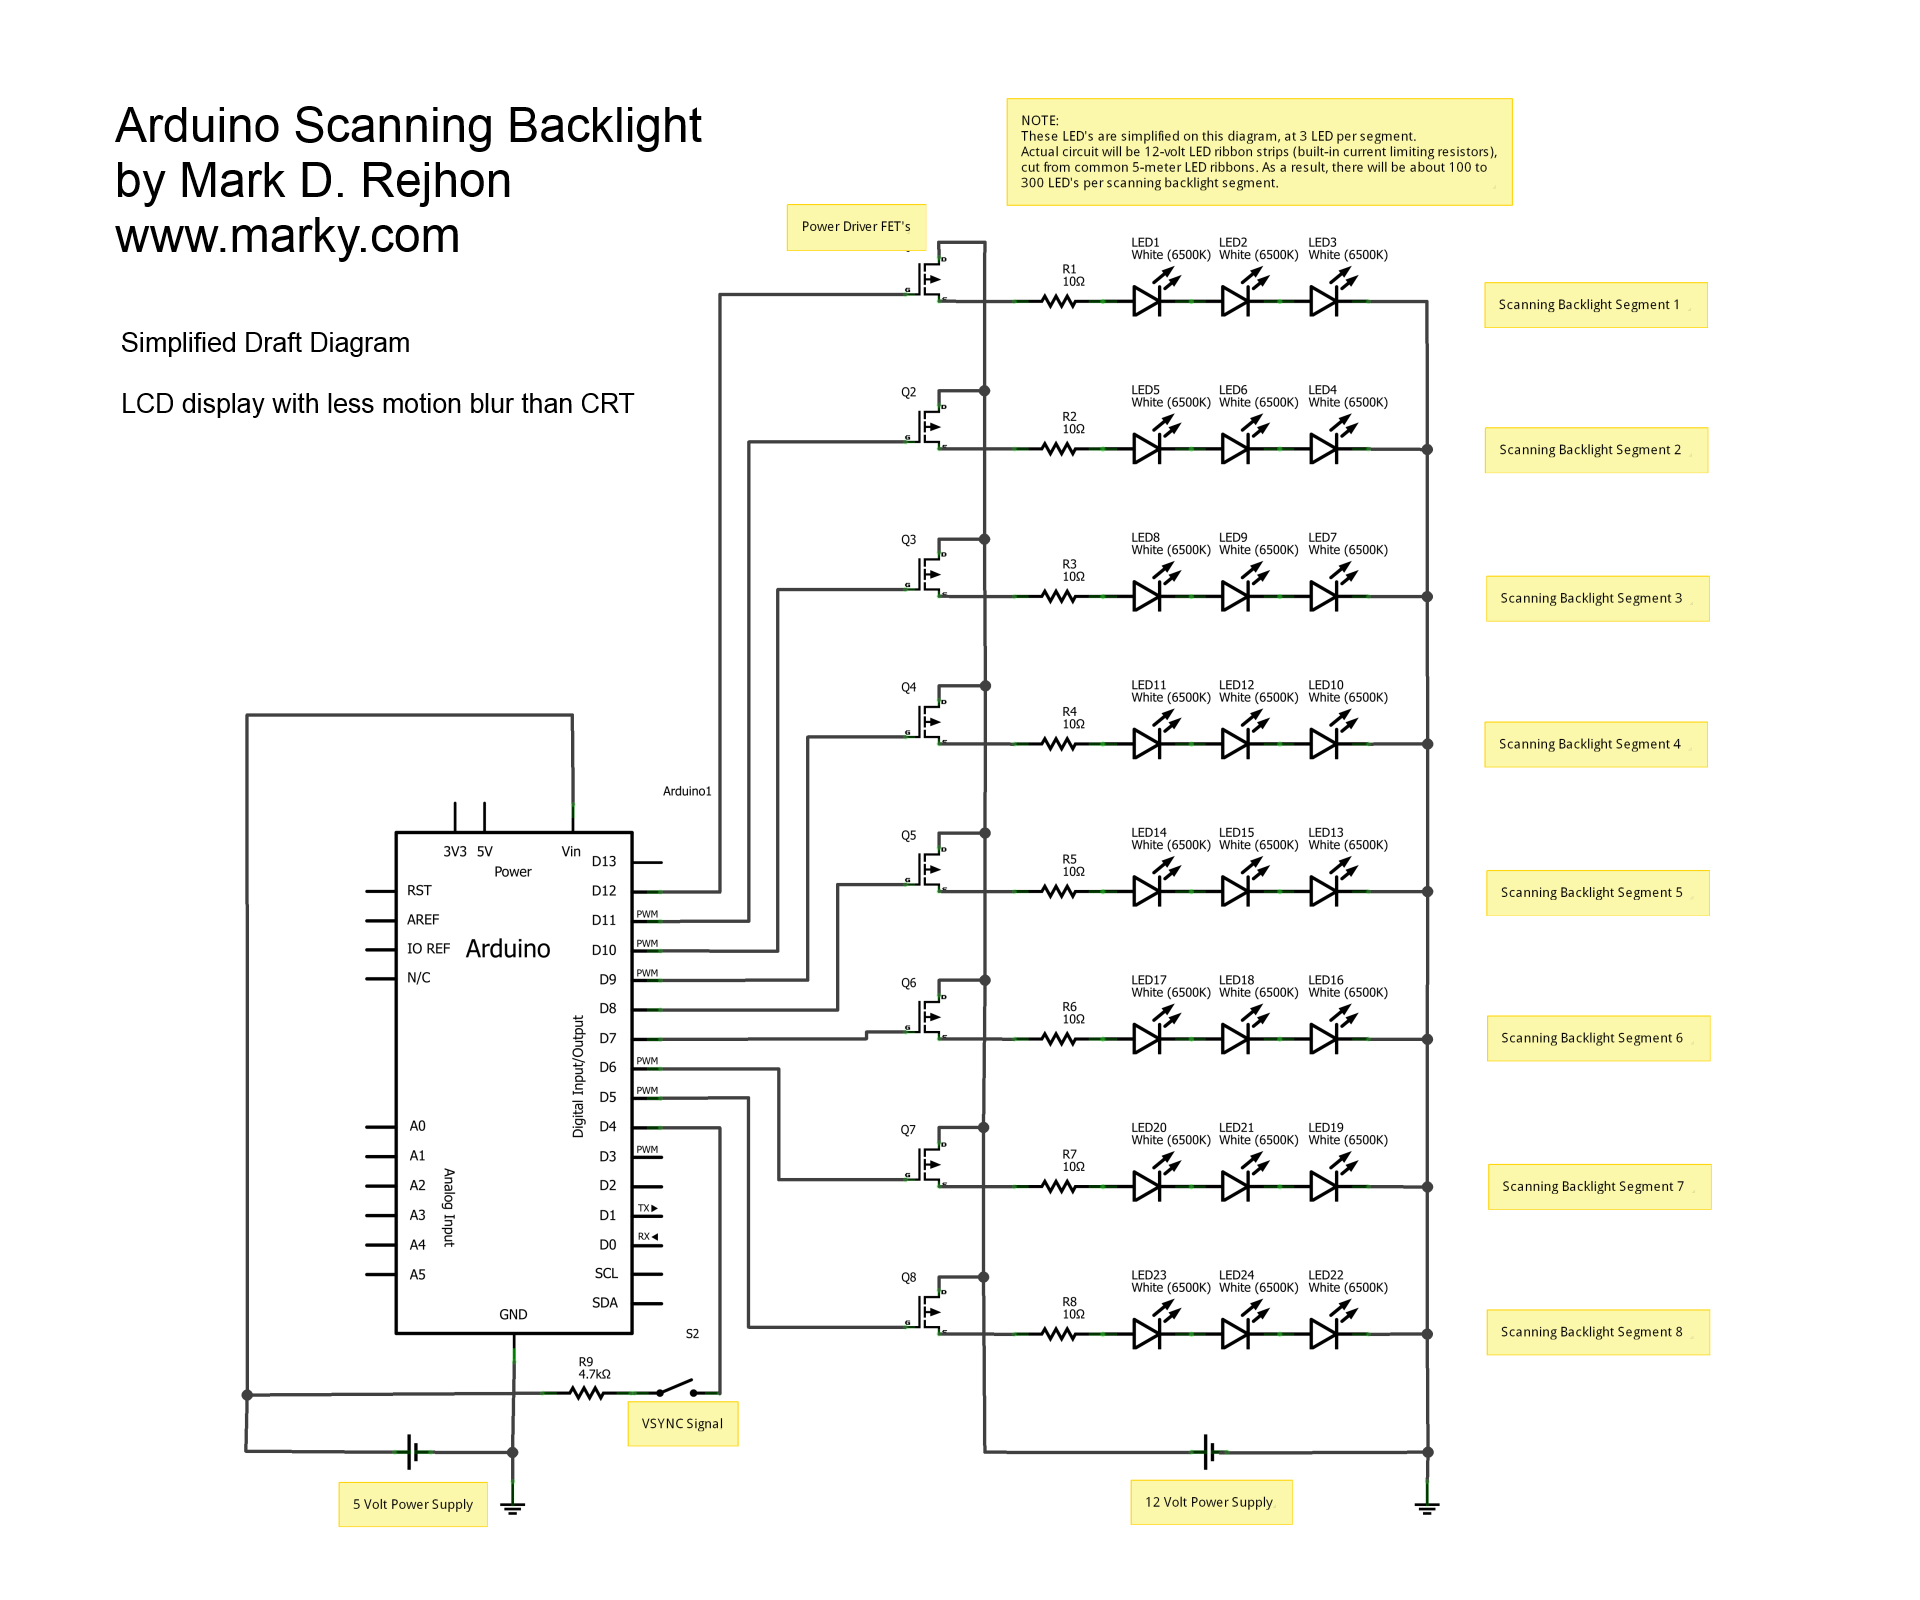 Schematic Diagram For Scanning Backlight